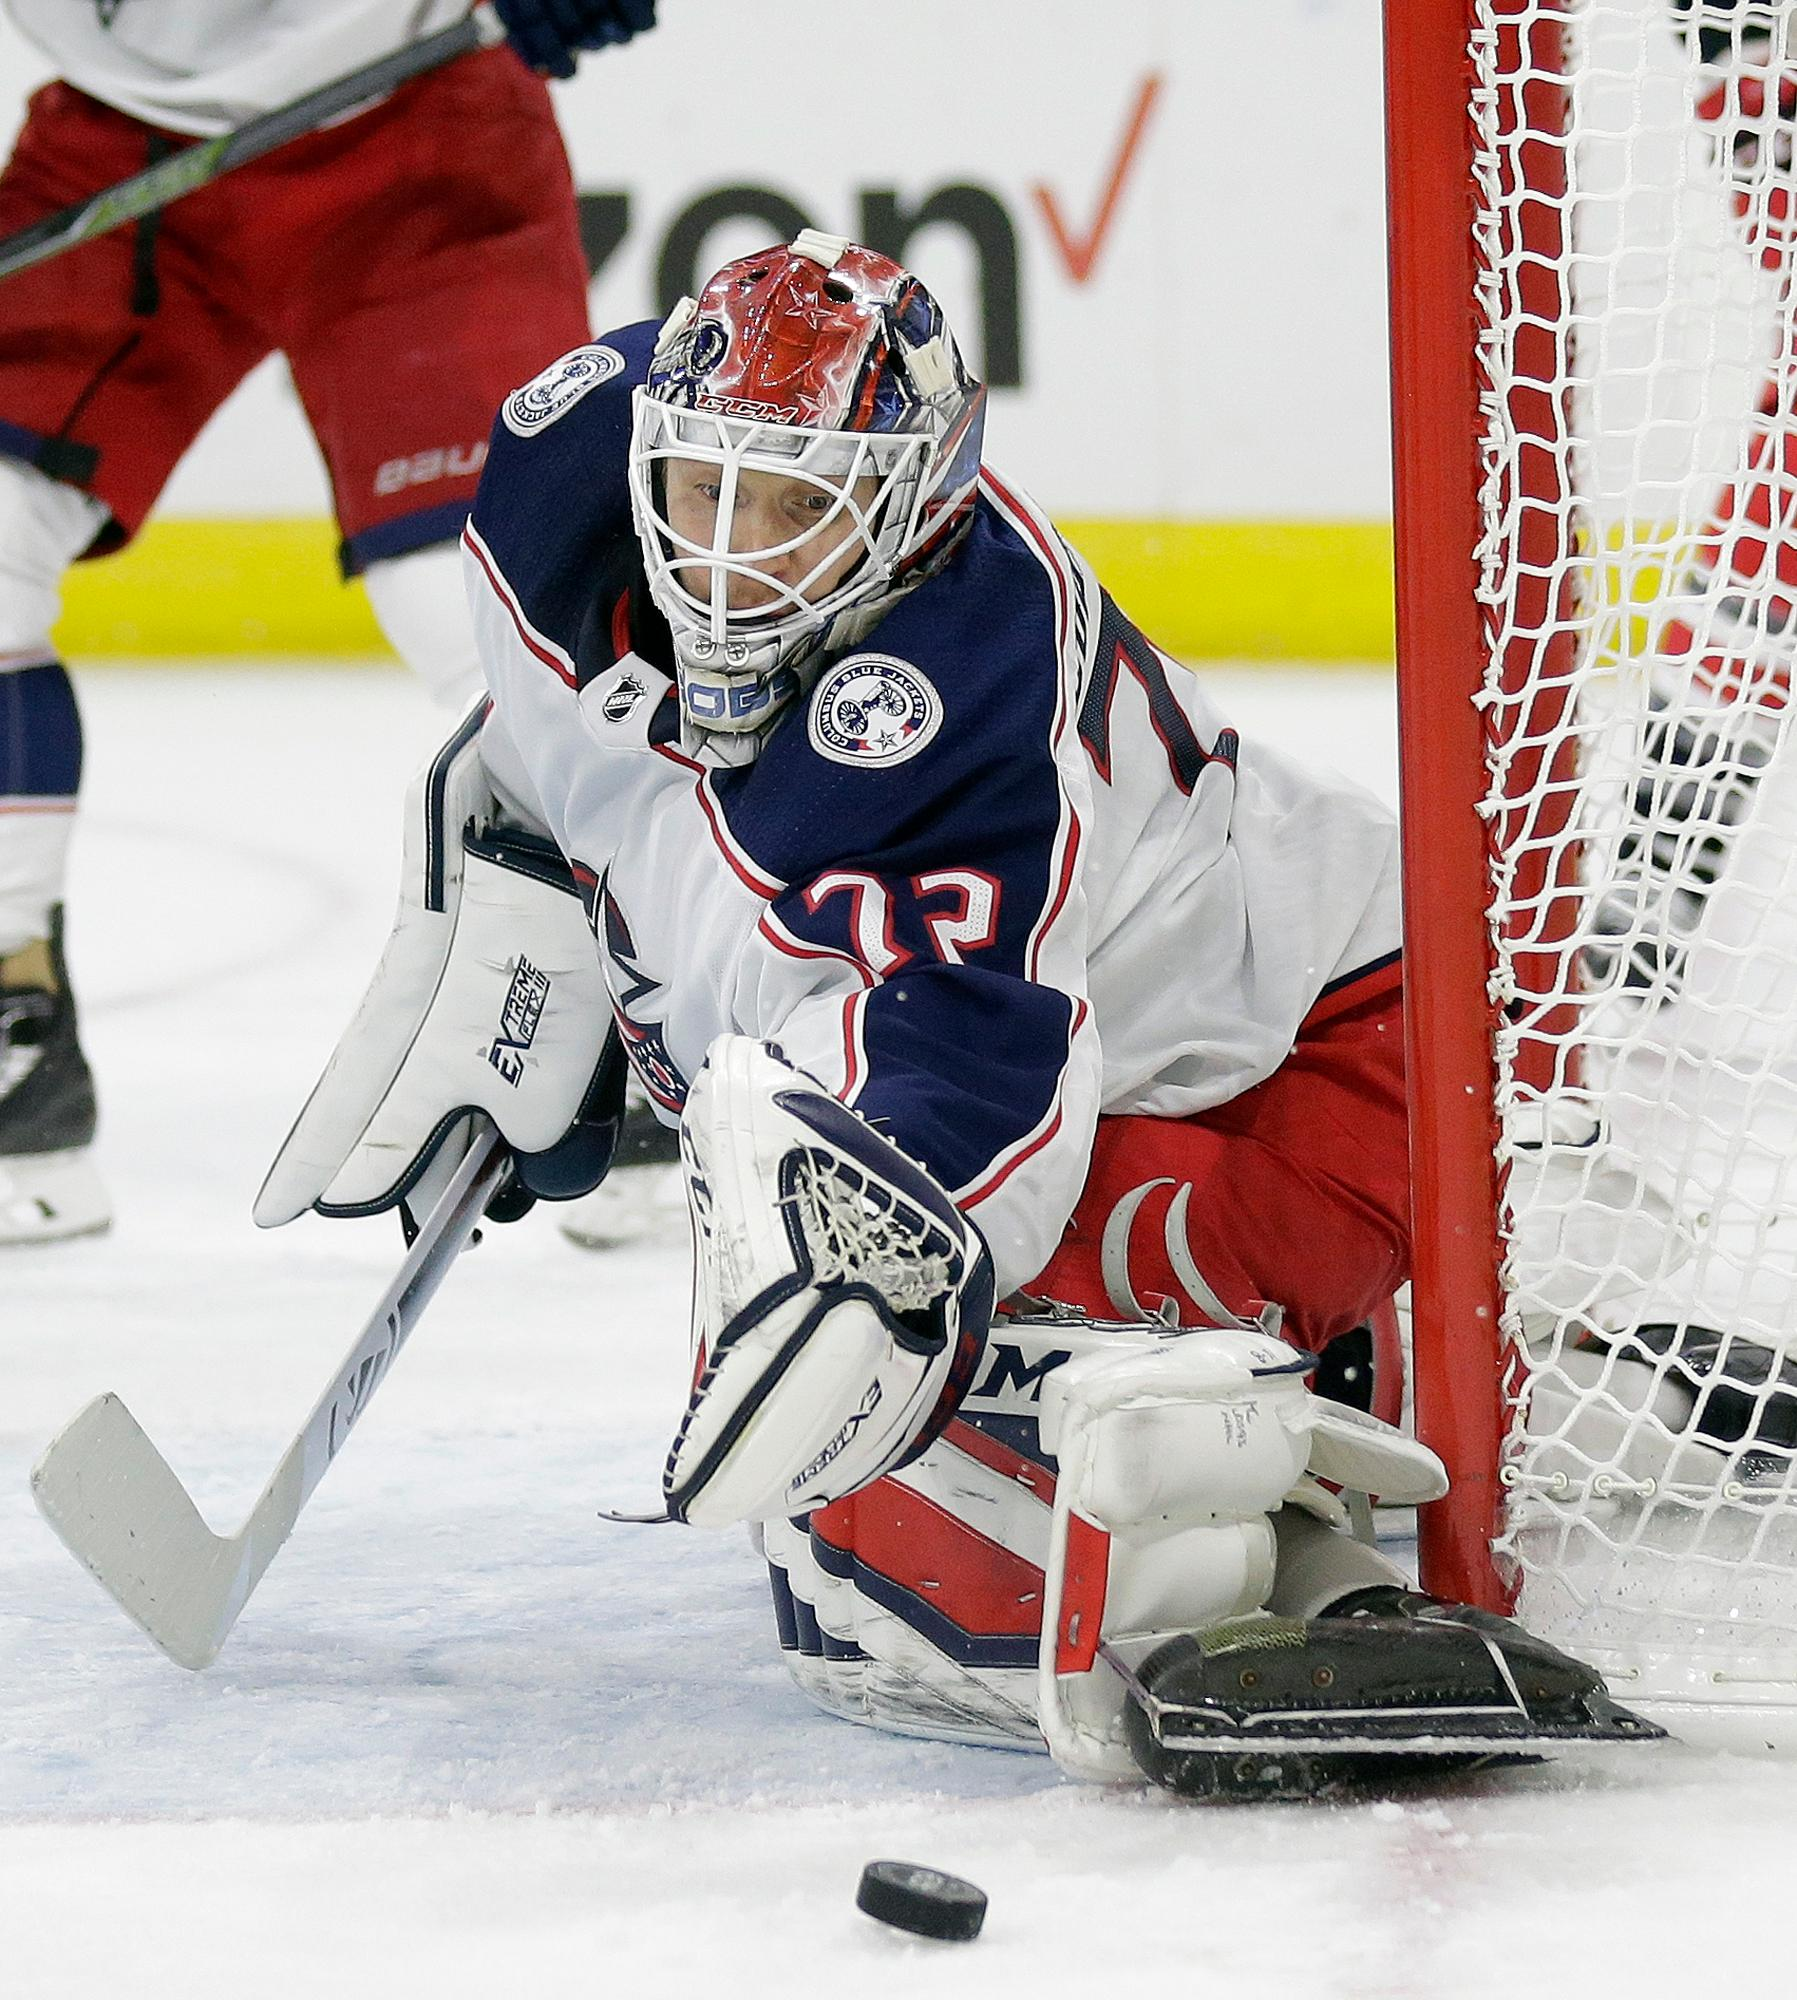 Columbus Blue Jackets goalie Sergei Bobrovsky (72), of Russia, defends the goal during the second period of an NHL hockey game against the Carolina Hurricanes in Raleigh, N.C., Tuesday, Oct. 10, 2017. (AP Photo/Gerry Broome)